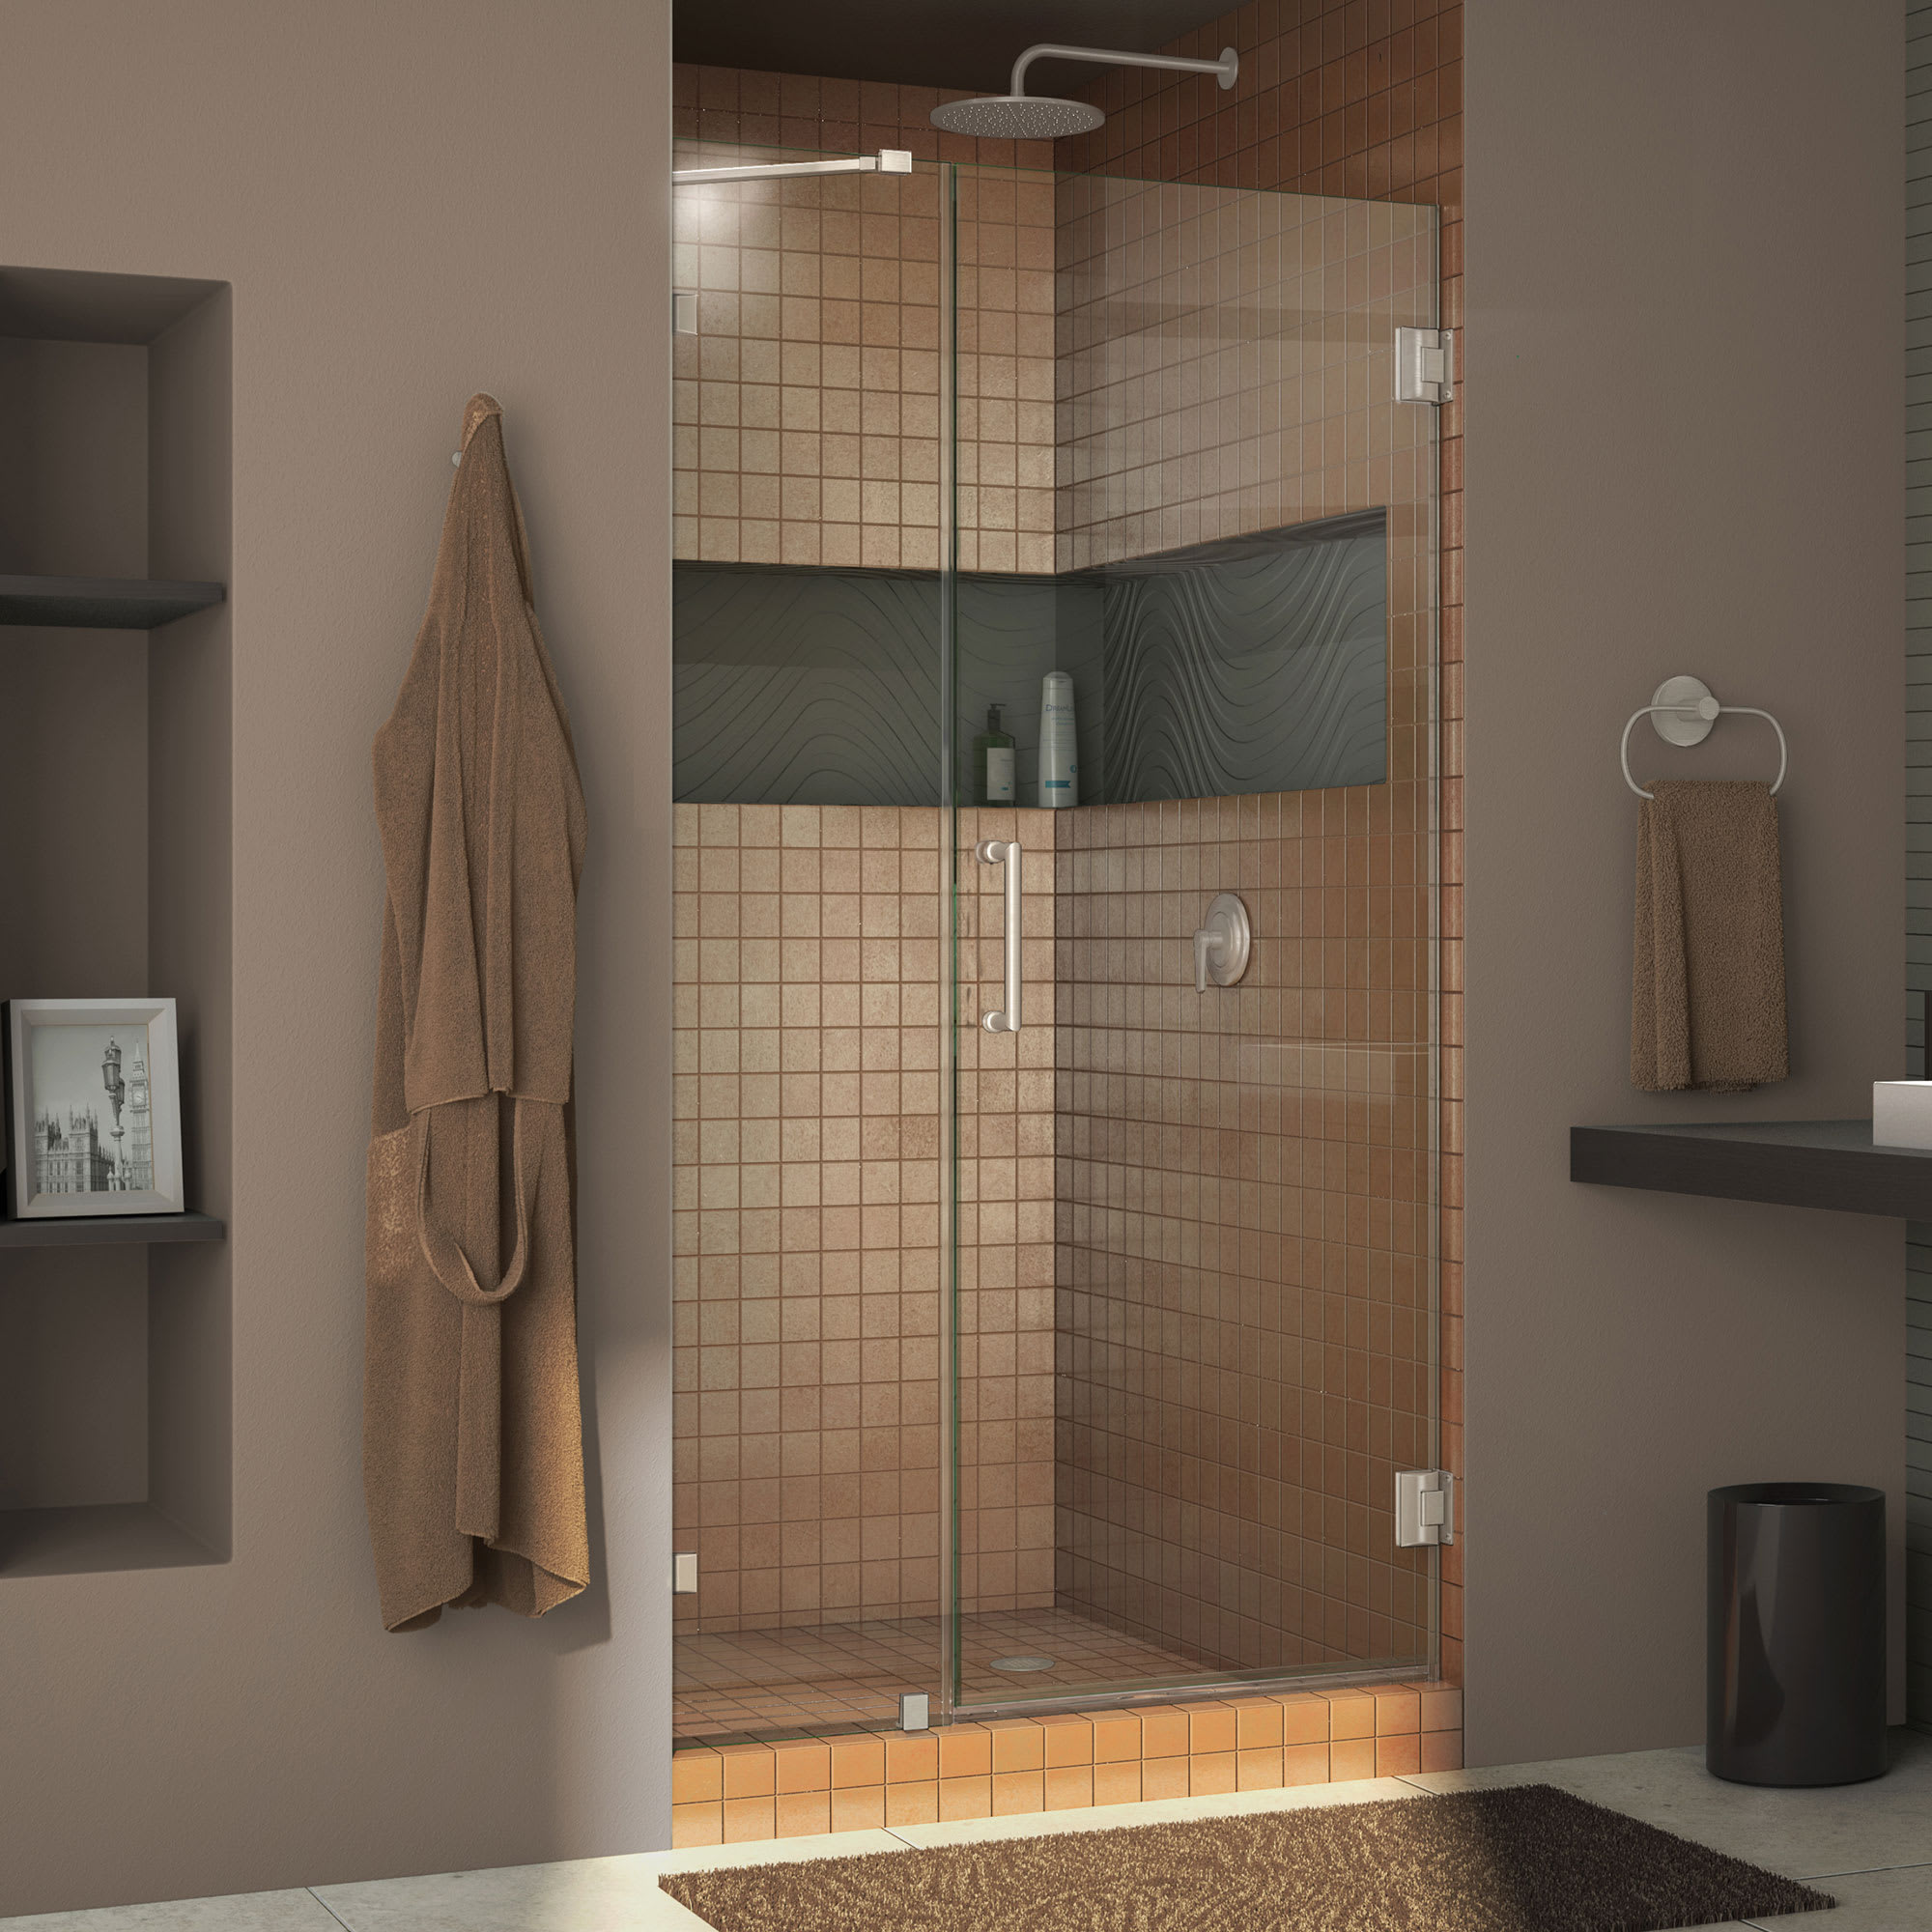 Dreamline Shdr 23397210 01 Chrome Unidoor Lux 72 High X 39 Wide Hinged Frameless Shower Door With Clear Glass Faucet Com